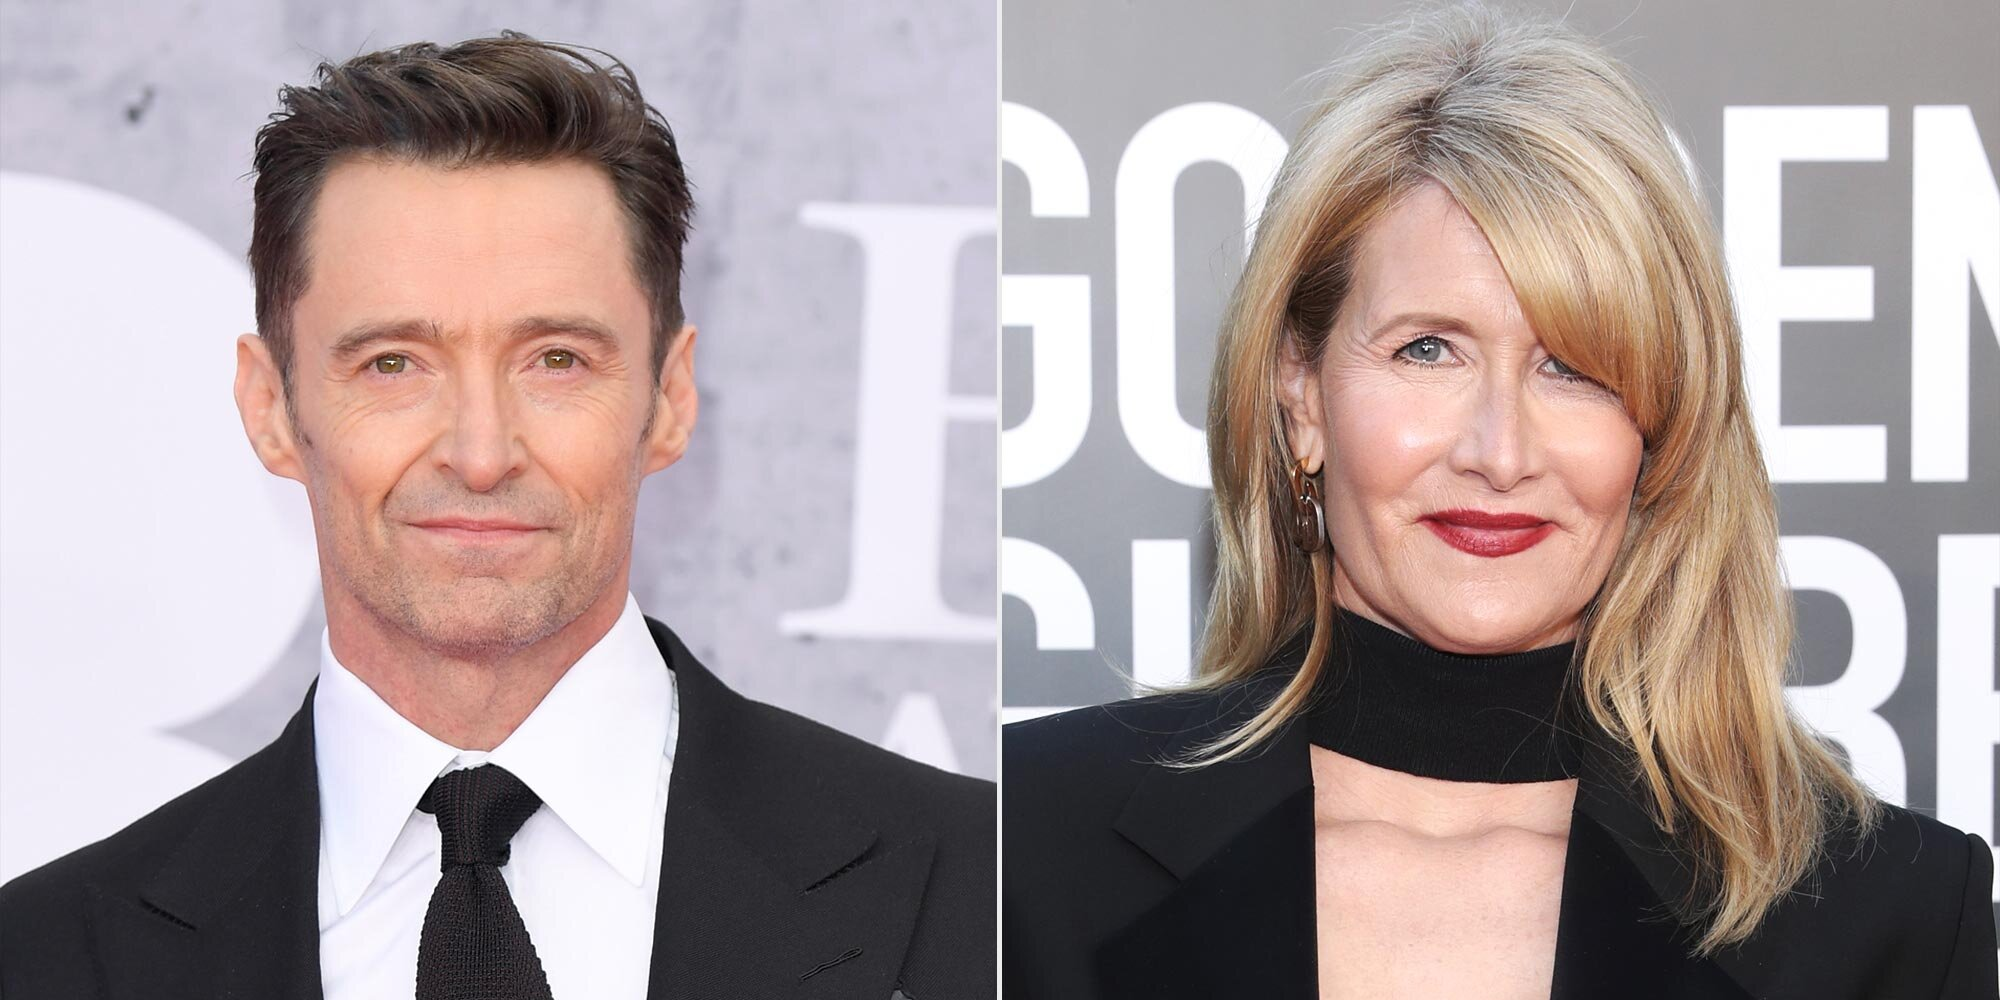 Hugh Jackman and Laura Dern to star in 'The Son,' a follow-up to Oscar-nominated 'The Father'